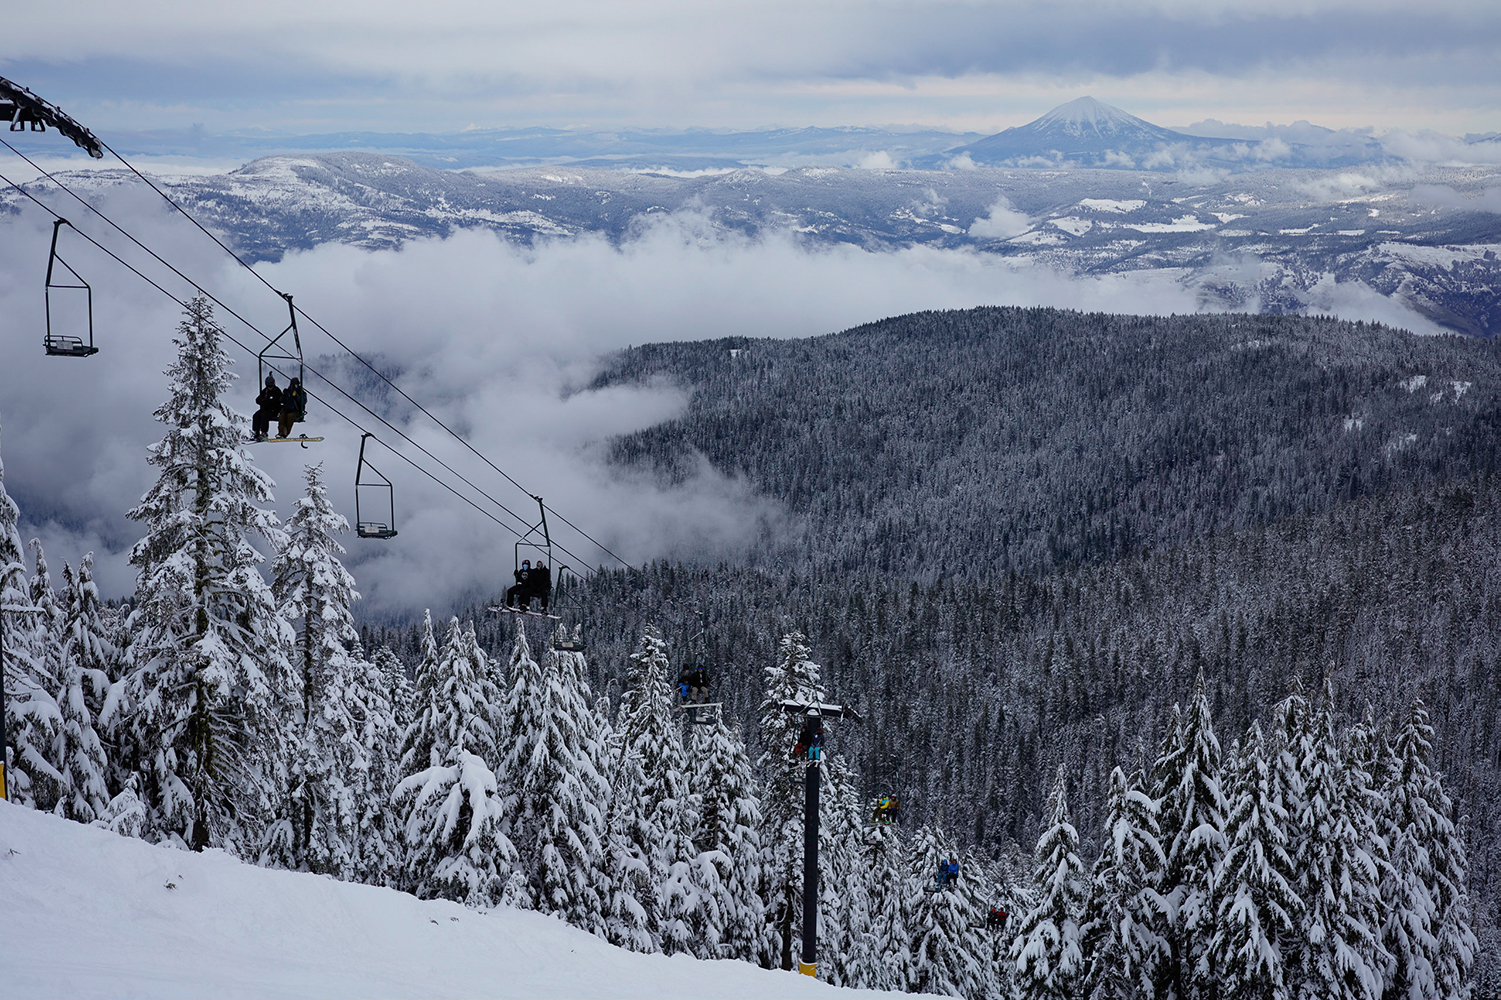 Mt. Ashland guests riding the Windsor chair